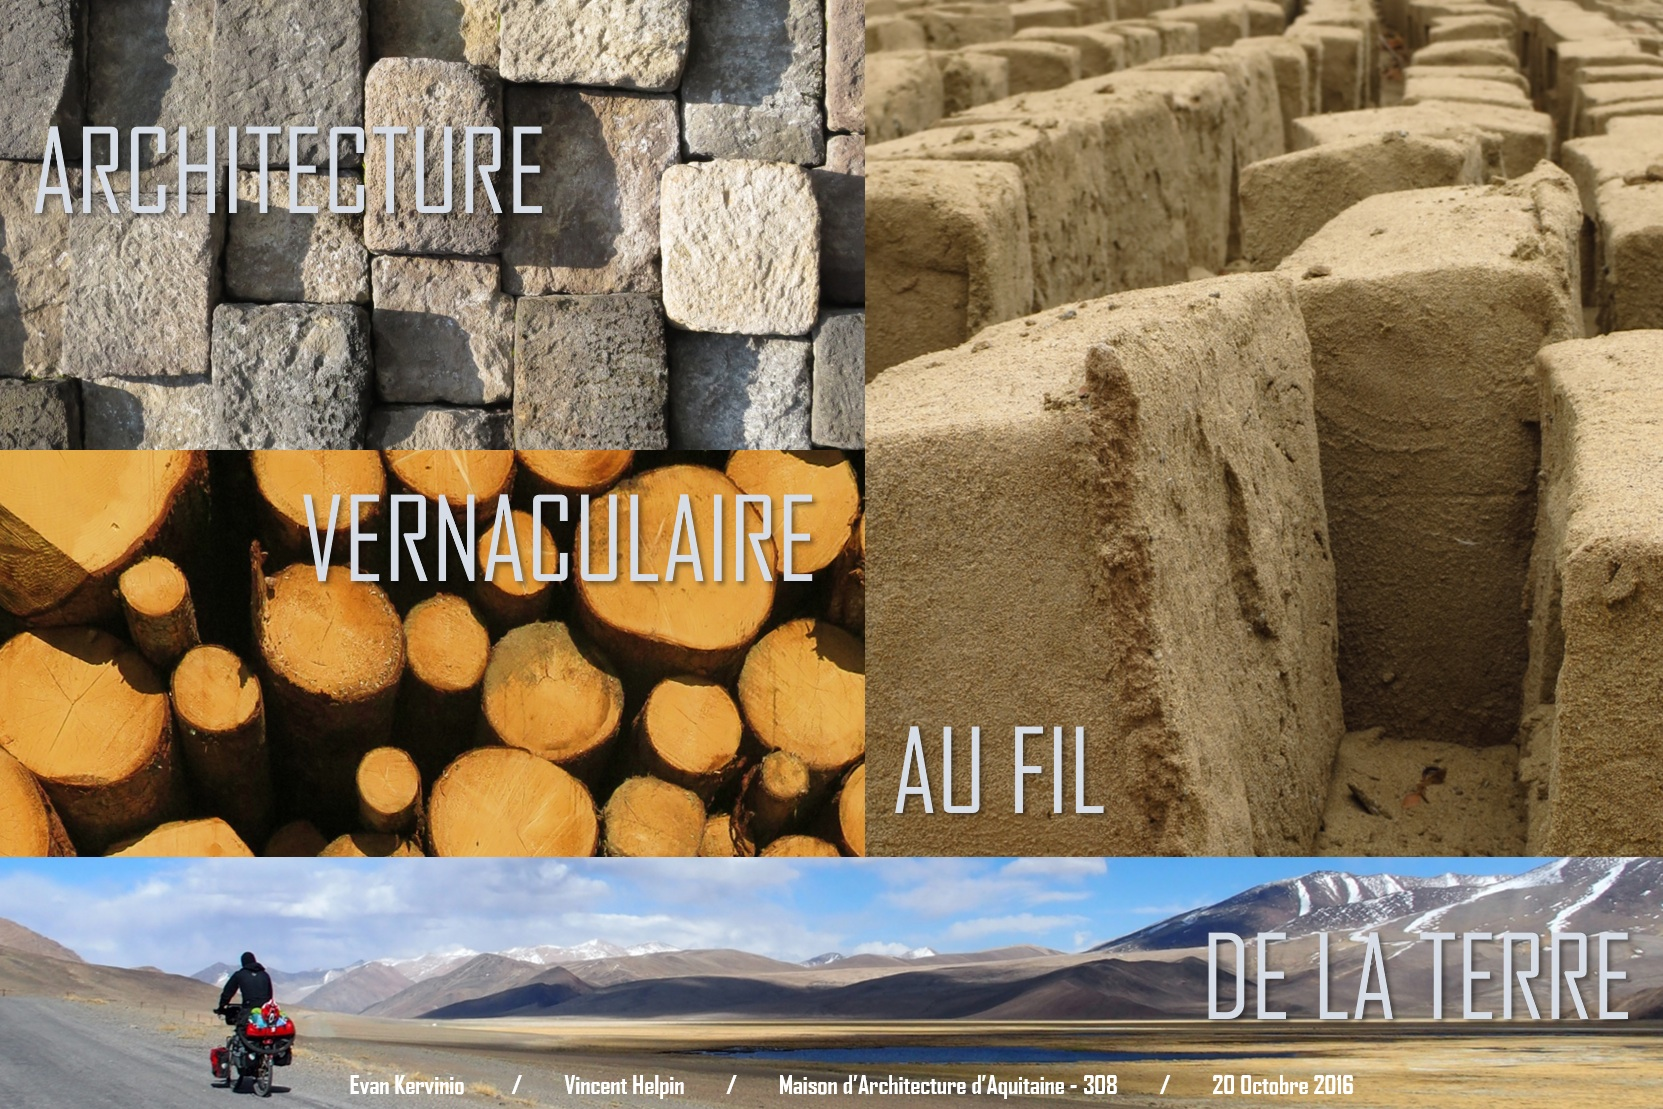 Cycle mati re conf rence architecture vernaculaire au fil for L architecture vernaculaire